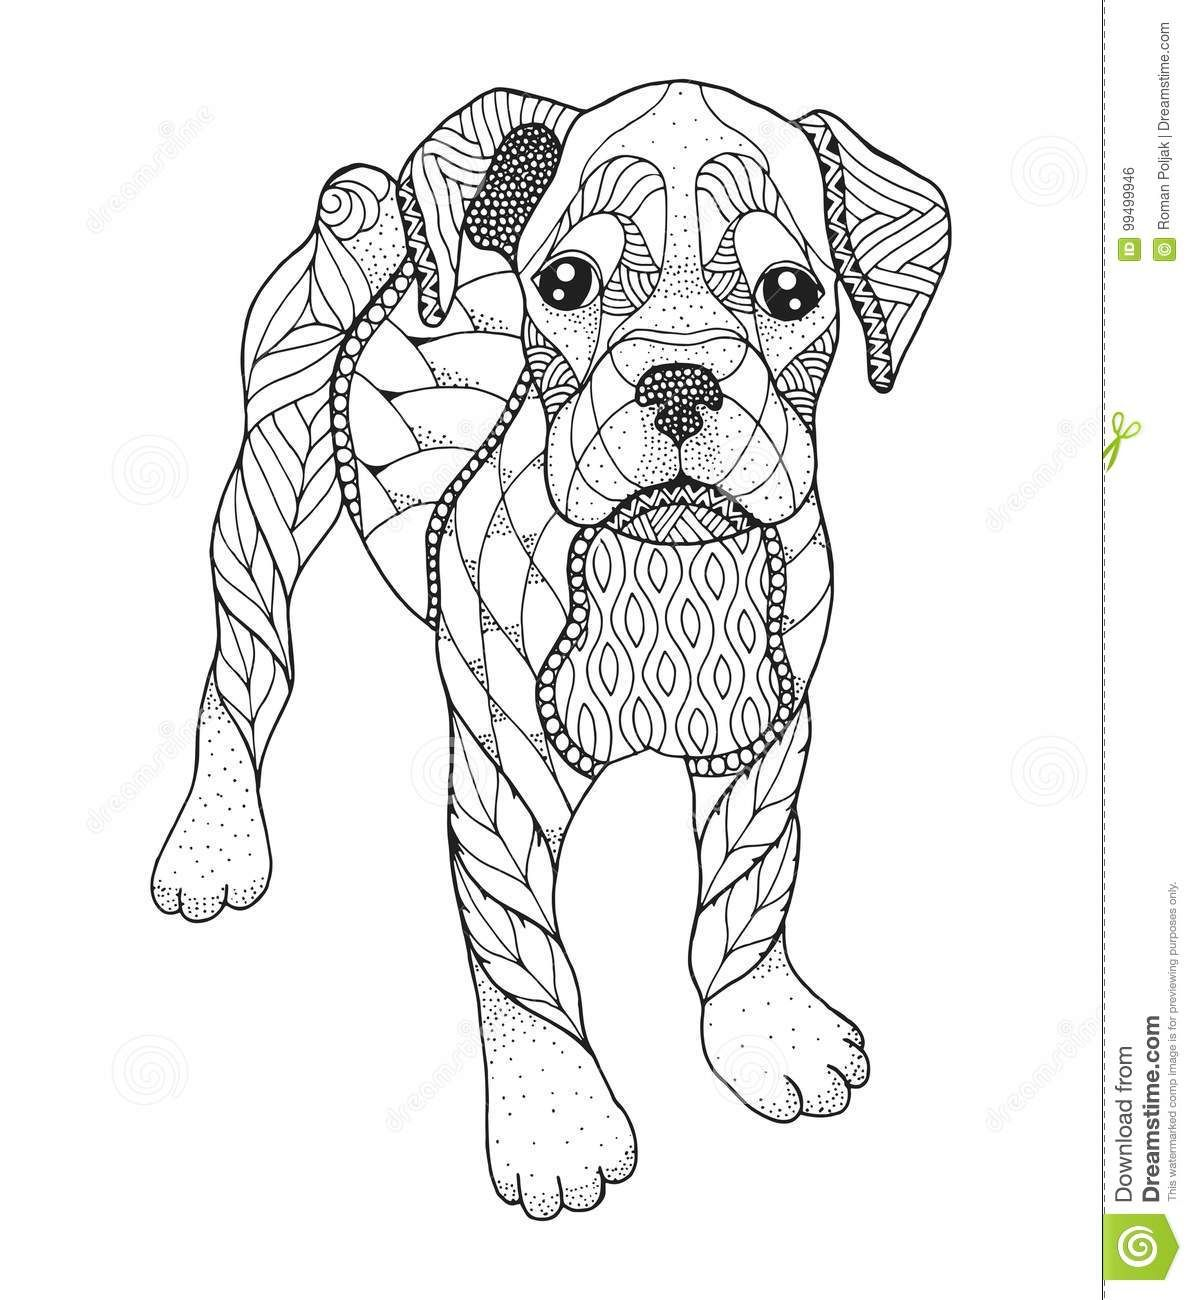 Boxer Dog In Zentangle And Stipple Style Vector Illustration Stock Vector Illustration Of Coloring Animal Dog Coloring Page Dog Coloring Book Dog Drawing